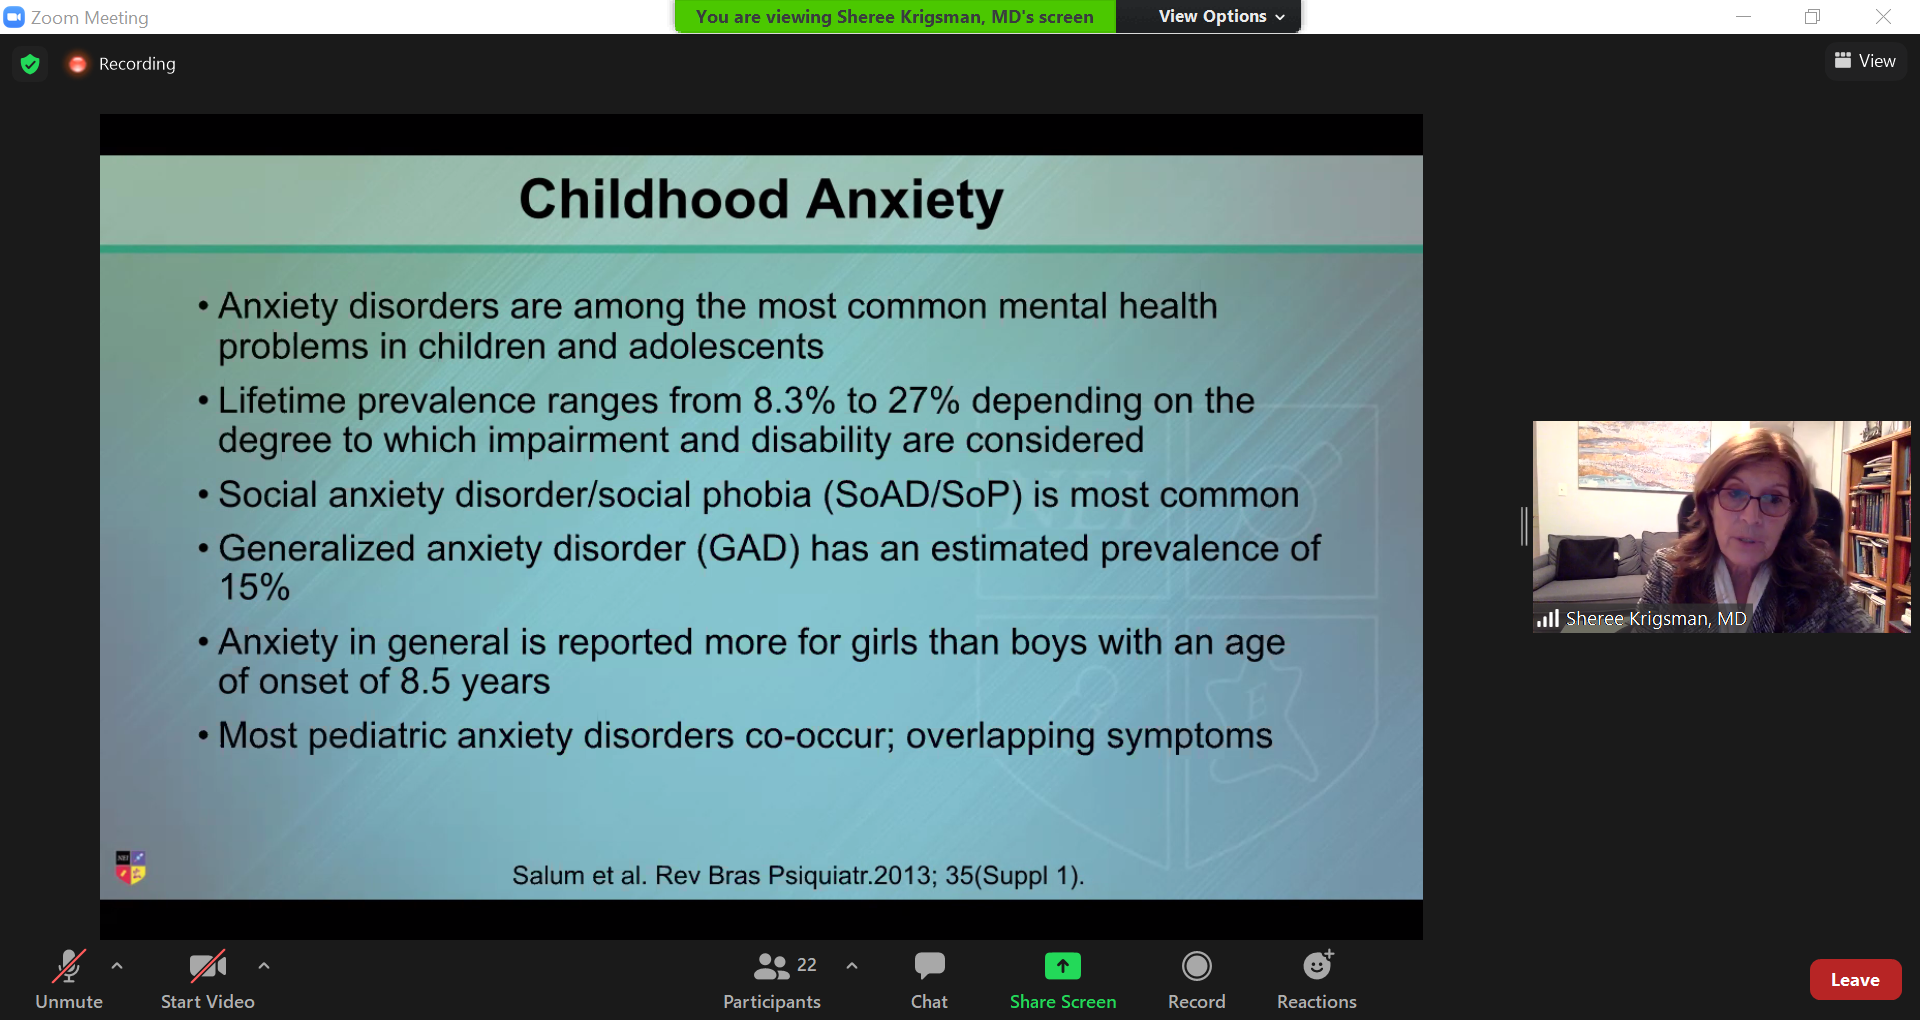 Dr. Sheree Krigsman explains that shows anxiety disorders are common in childhood.